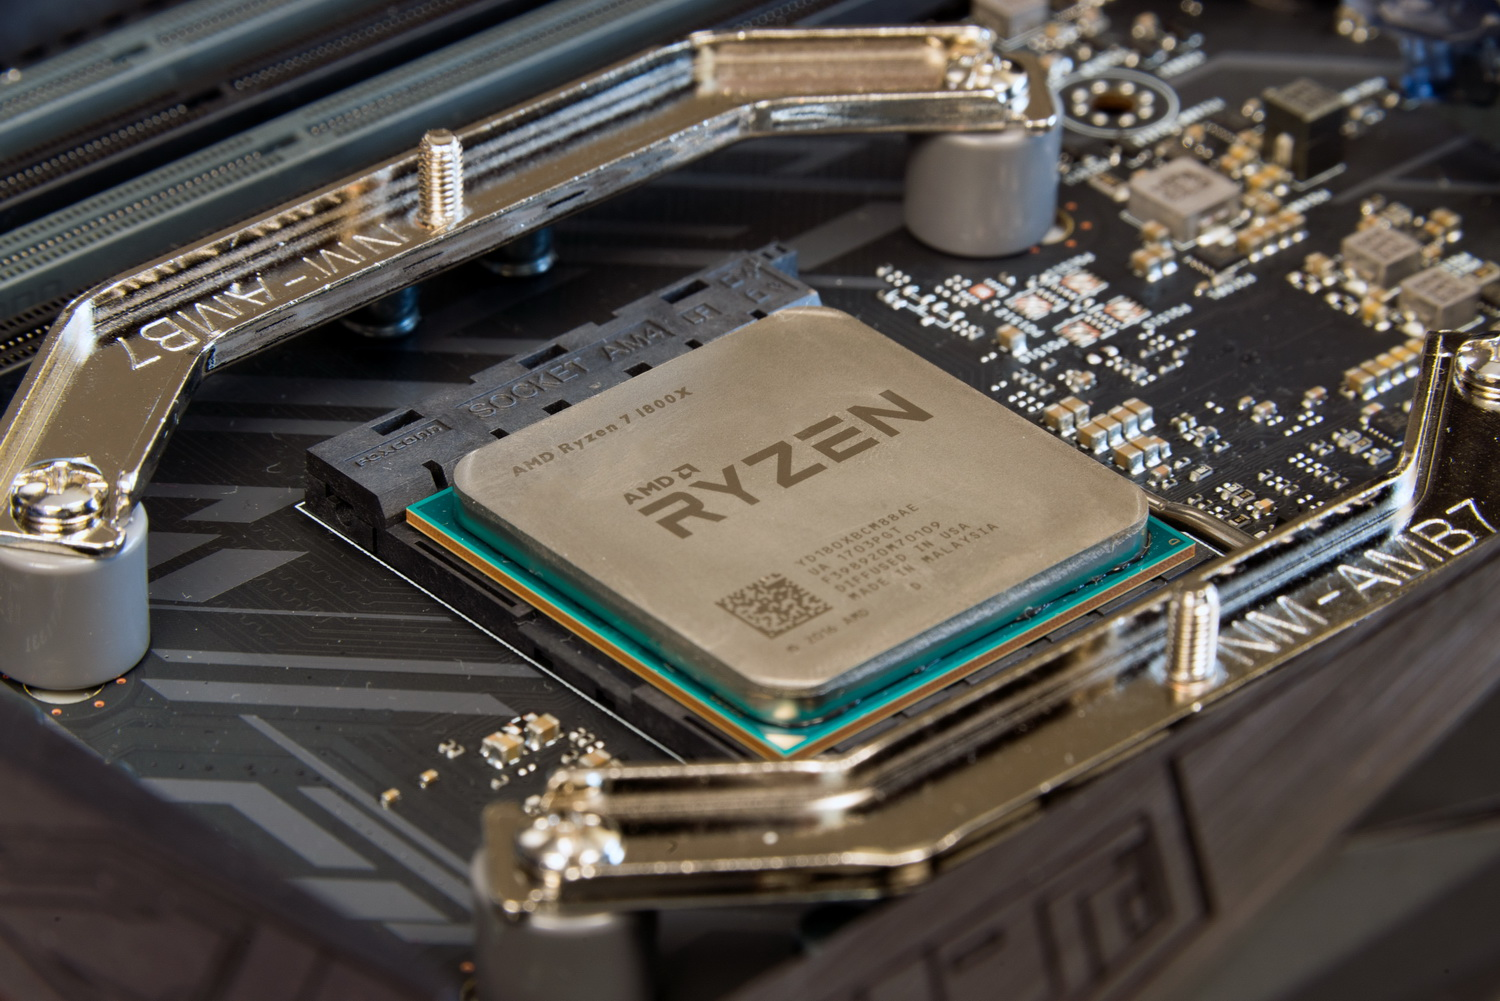 AMD says there's no Windows 10 scheduling bug affecting Ryzen's performance